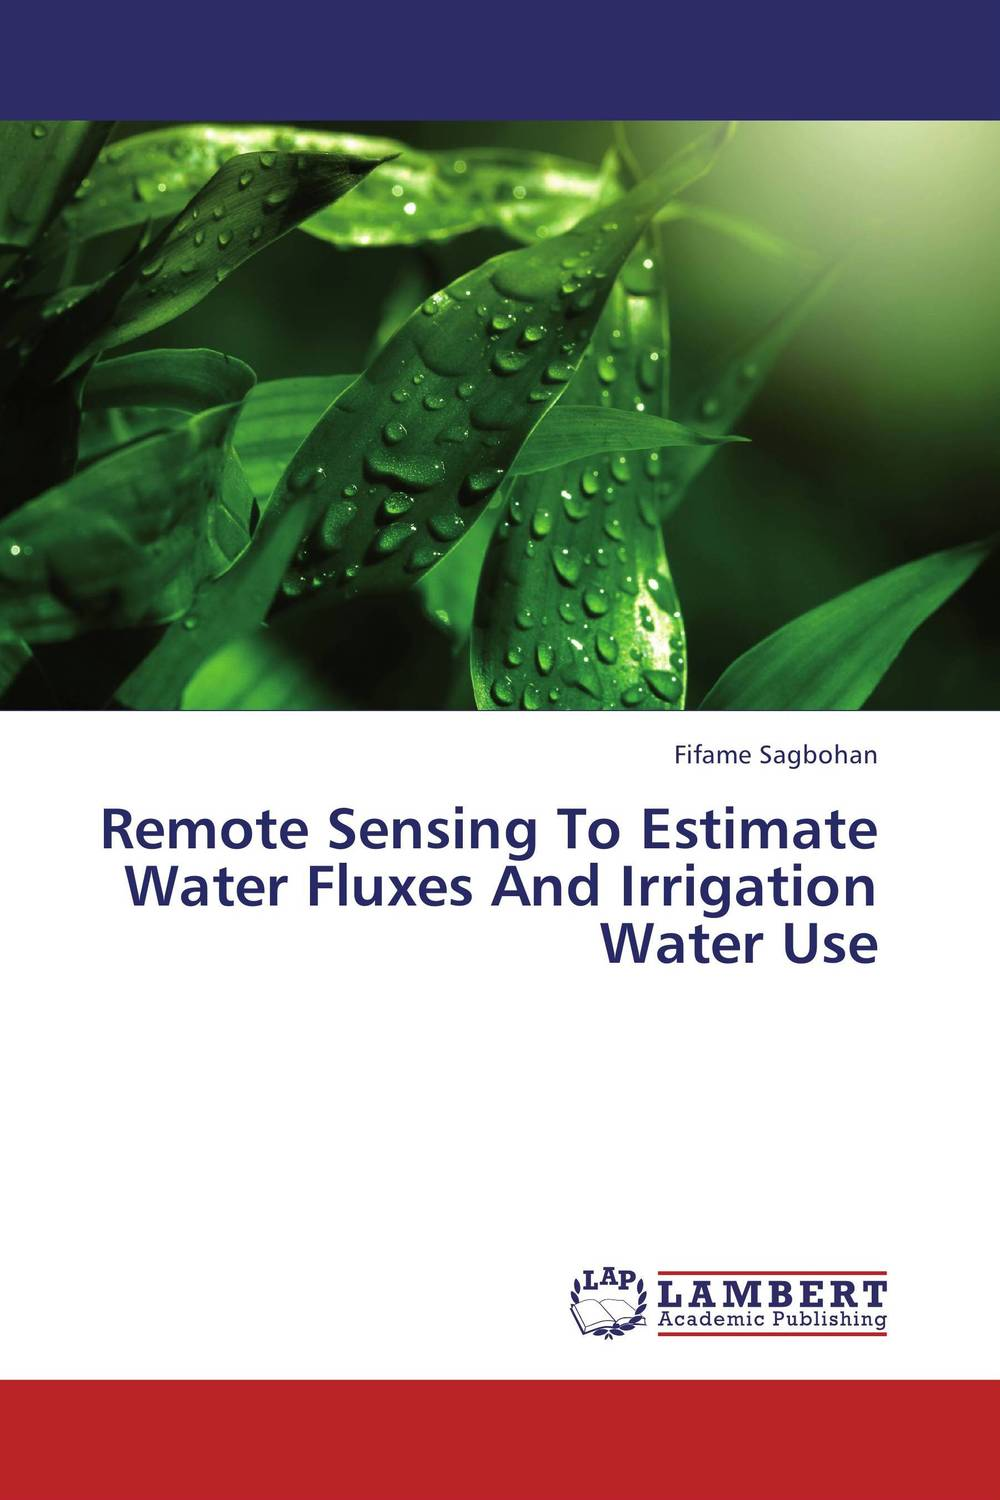 Remote Sensing To Estimate Water Fluxes And Irrigation Water Use